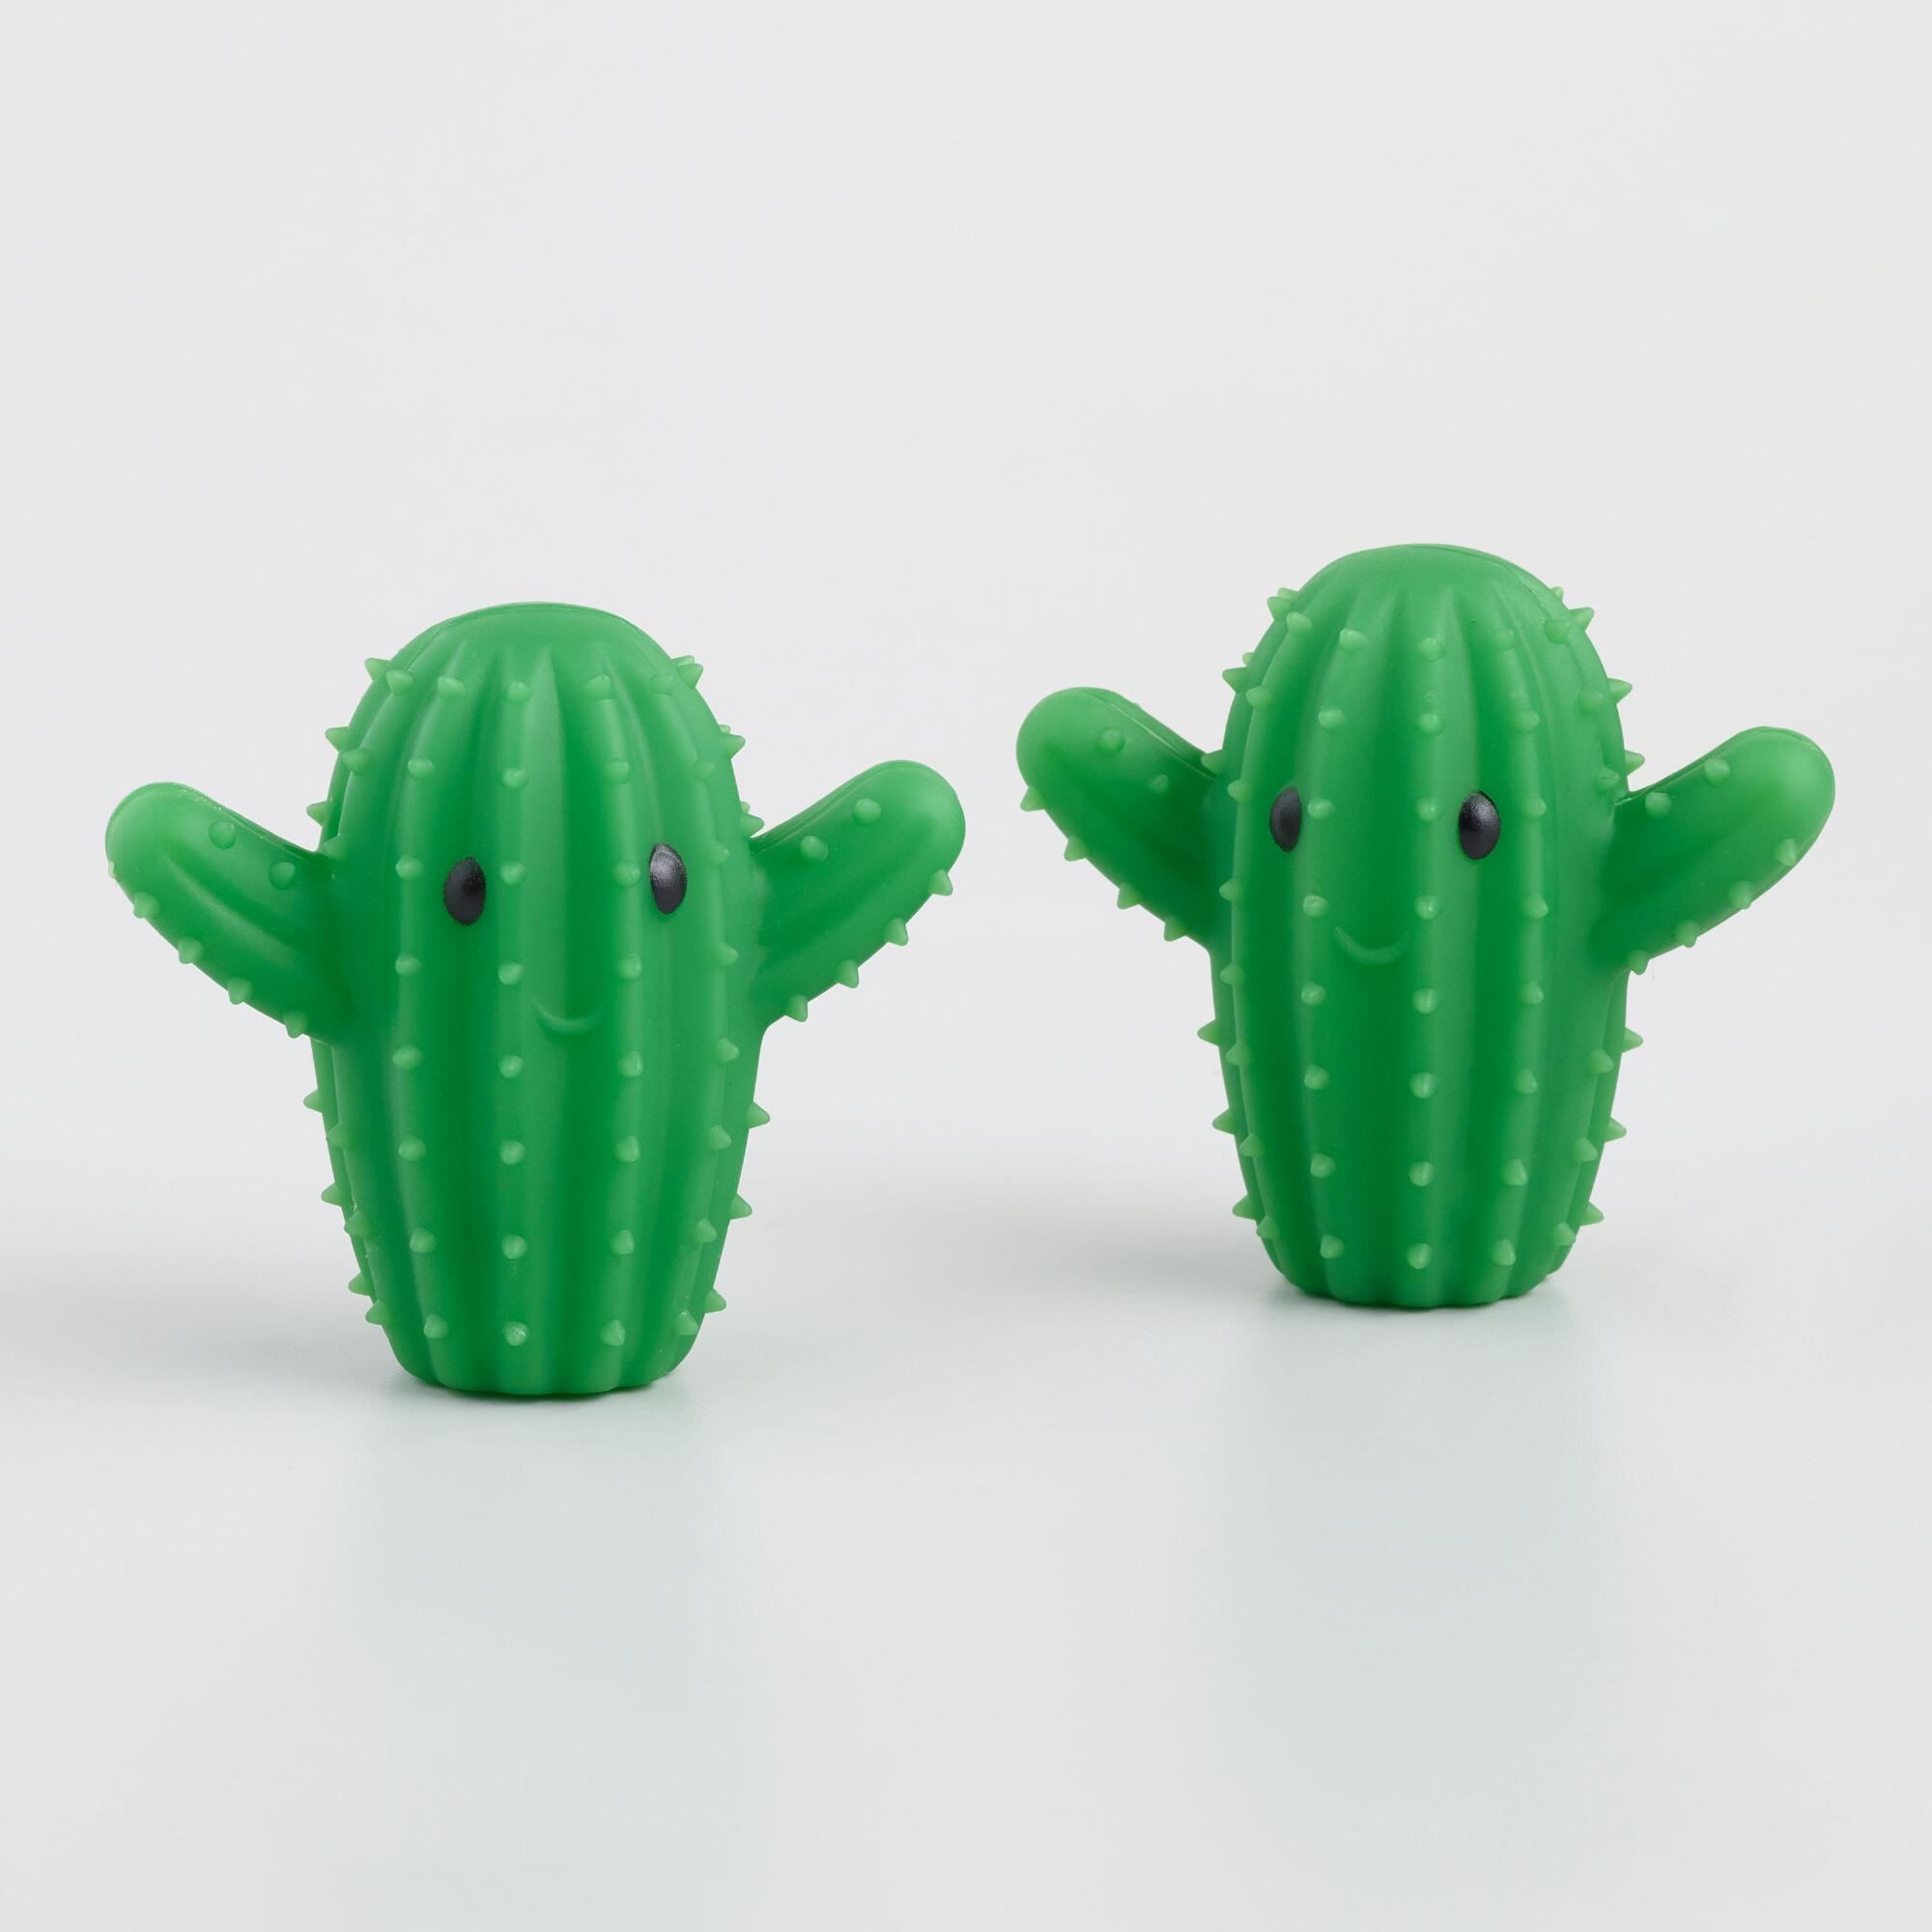 Kikkerland Cactus Buddy Dryer Balls 2 Pack by World Market